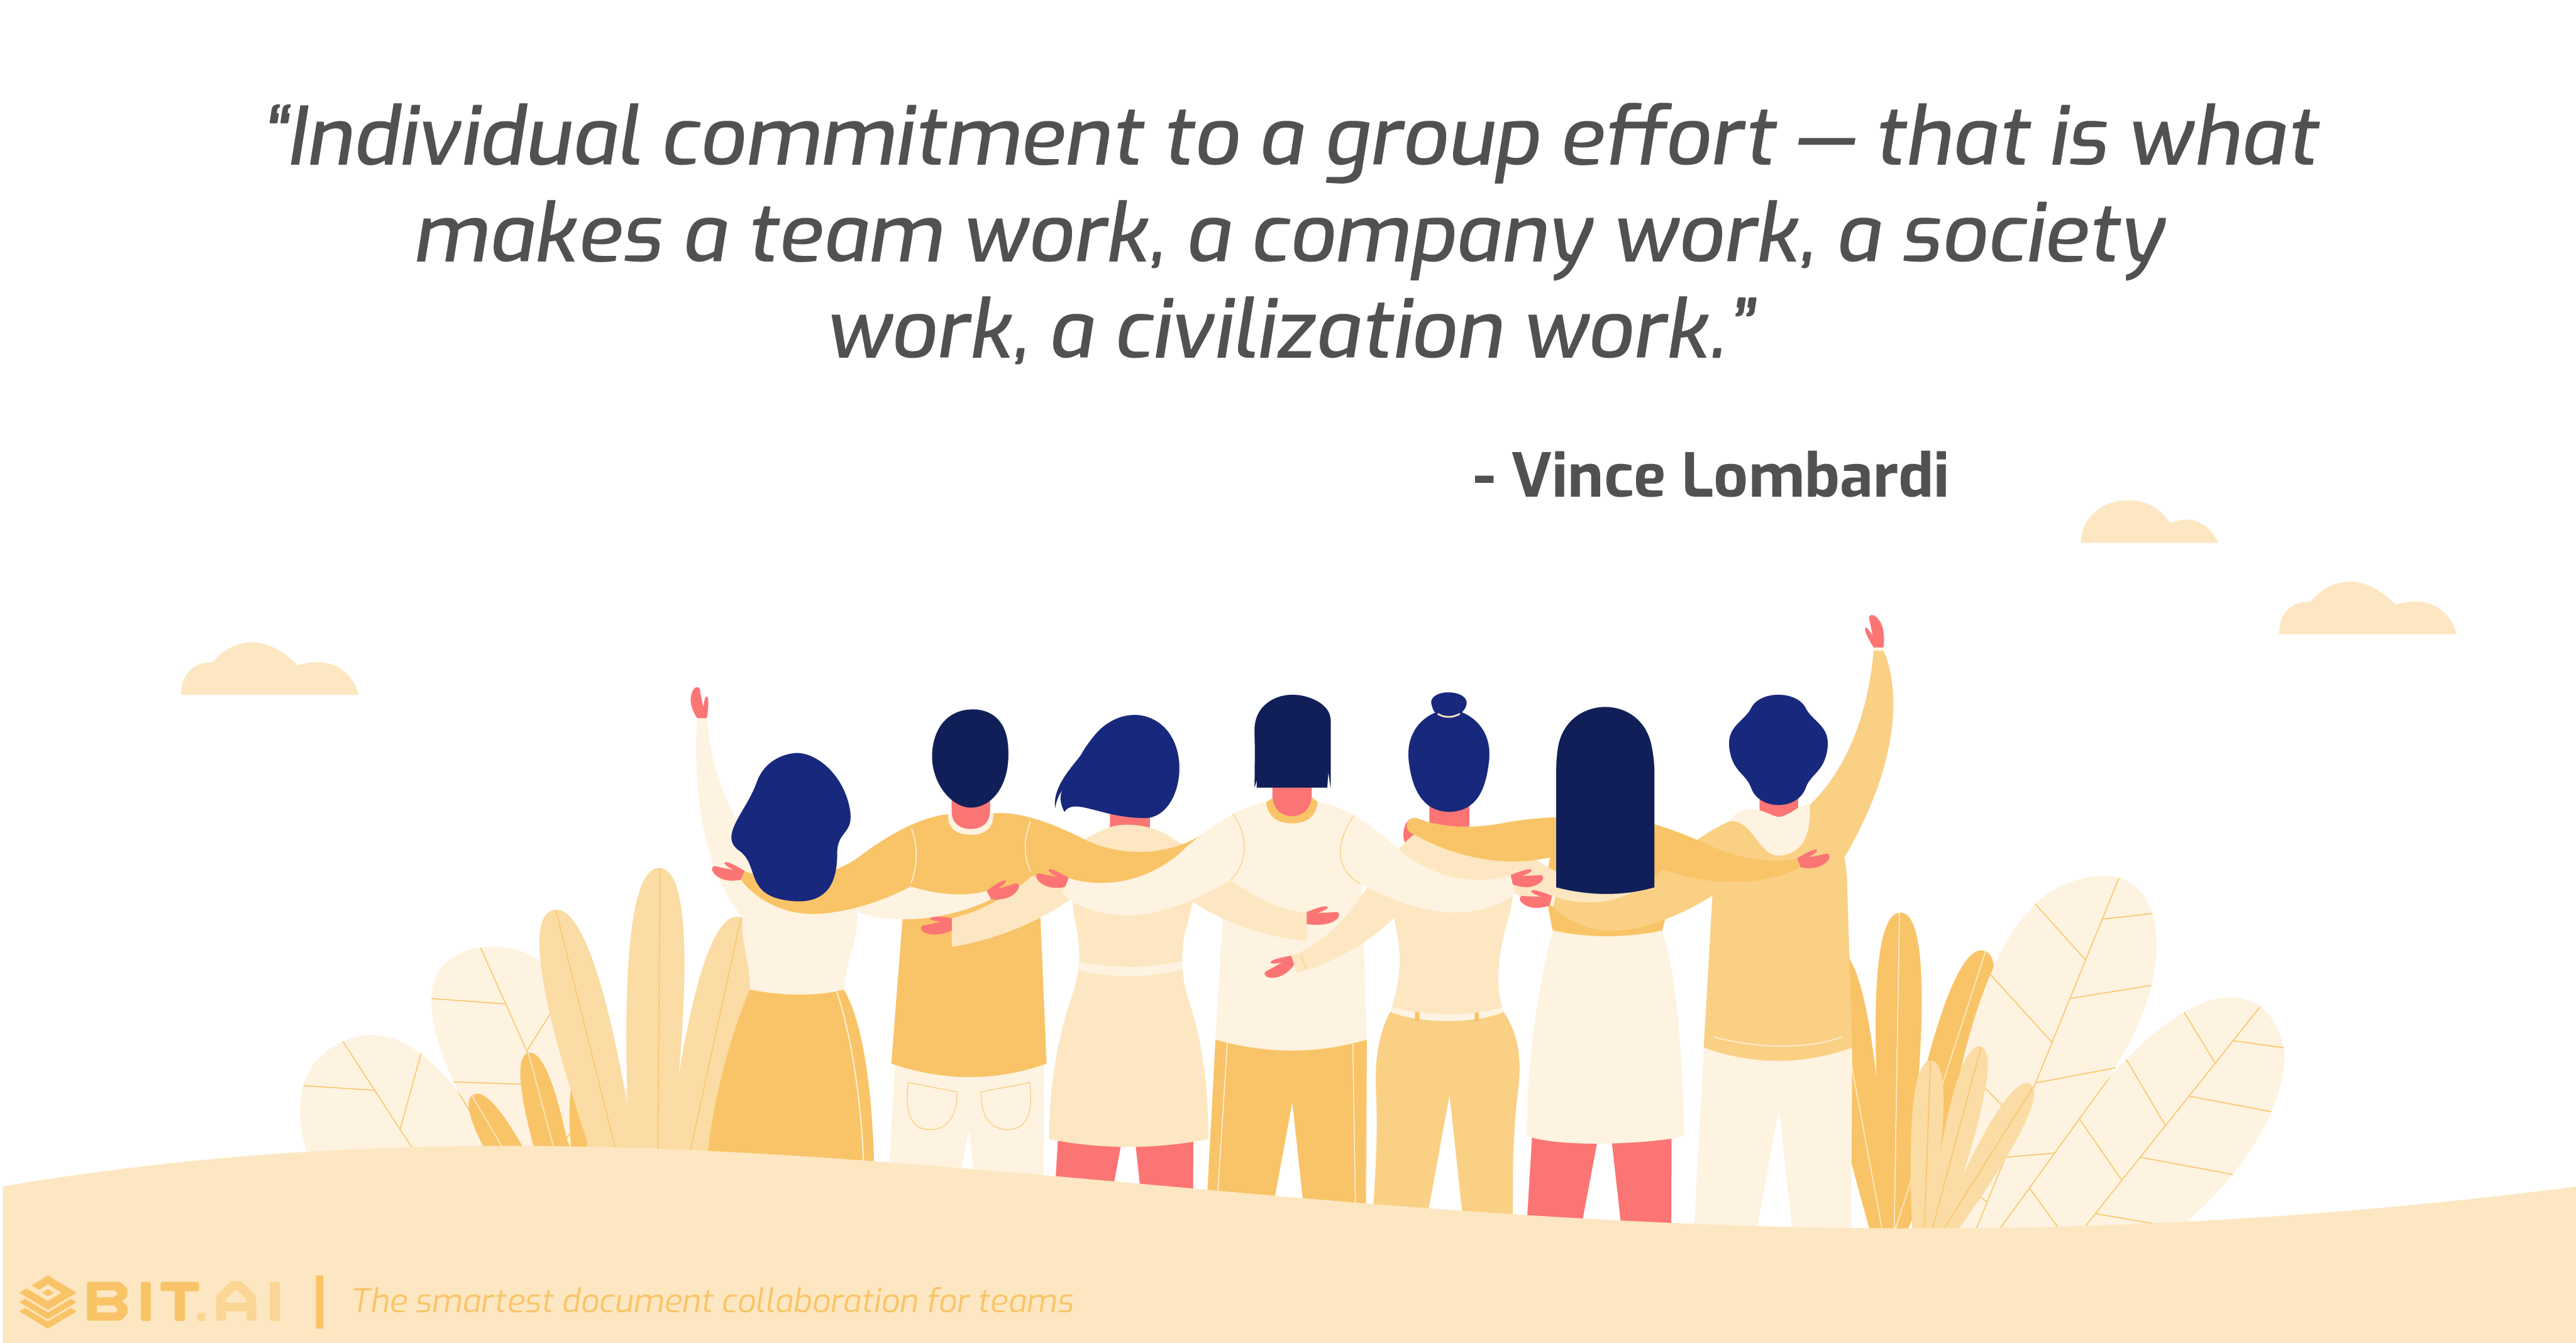 Teamwork collaboration quote by Vince Lombardi